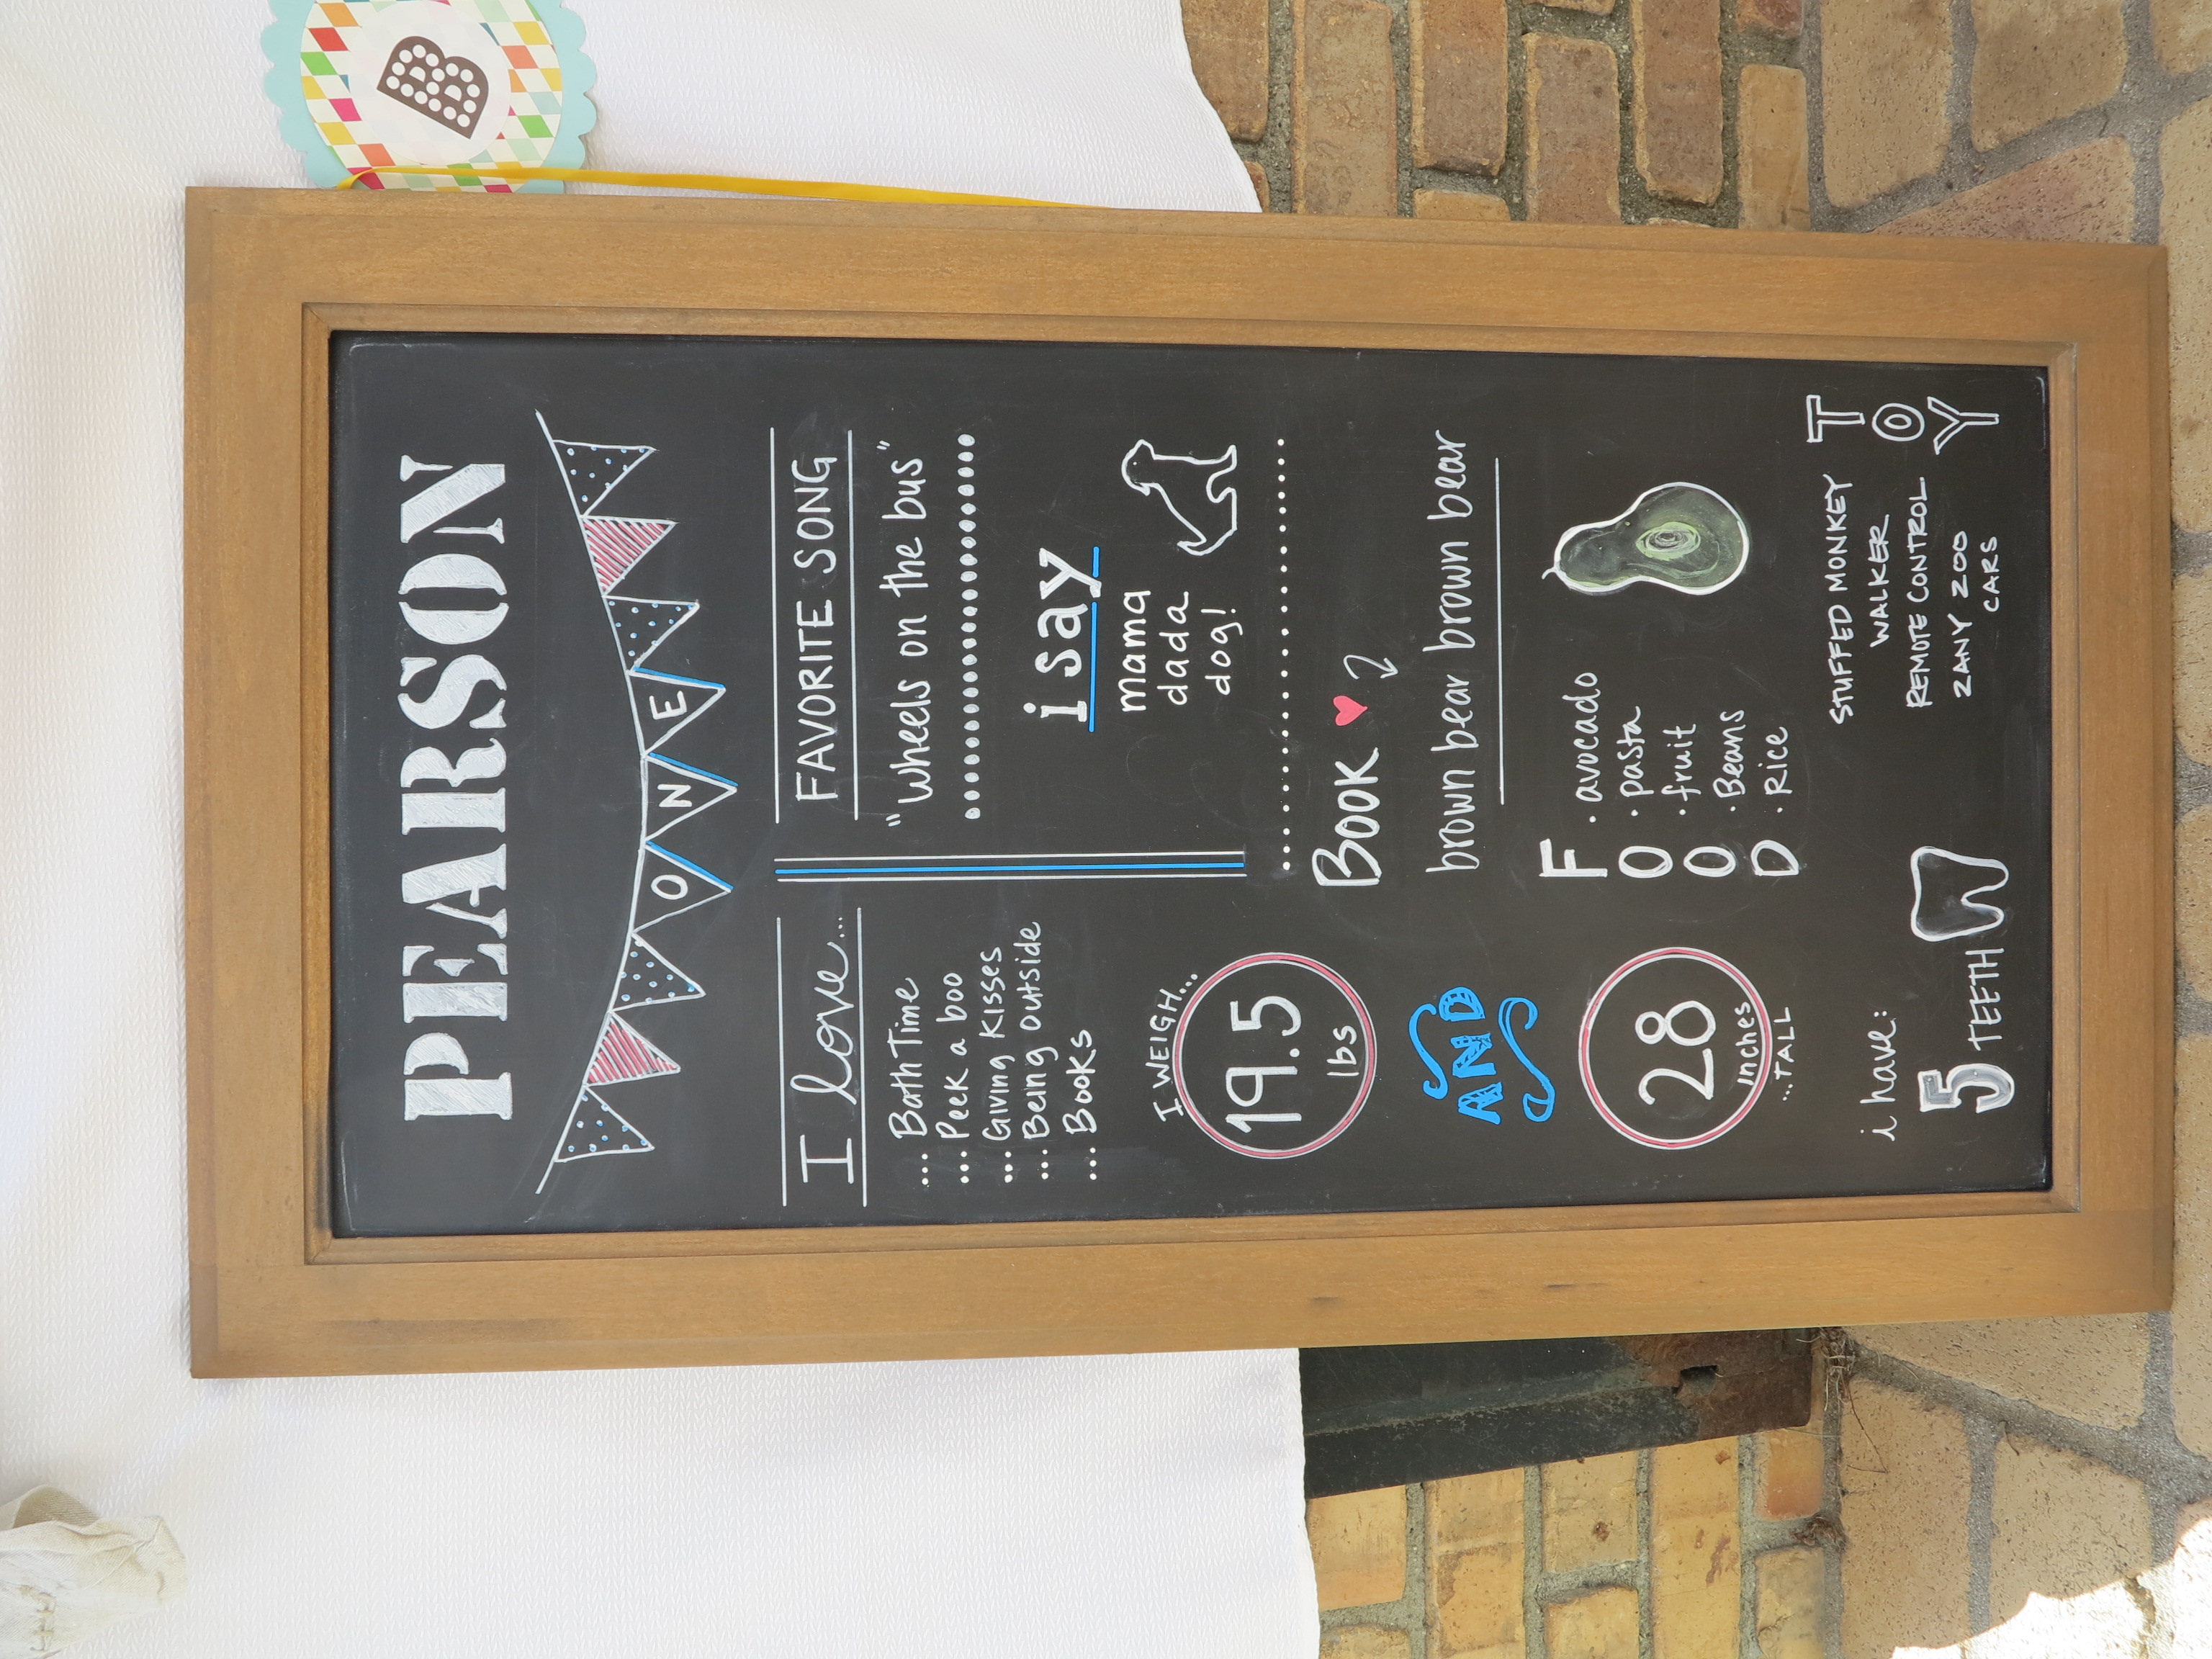 I loved the idea of these birthday chalkboards and couldn't resist creating one for PJ. It was fun for the guests to get to know the birthday boy better.